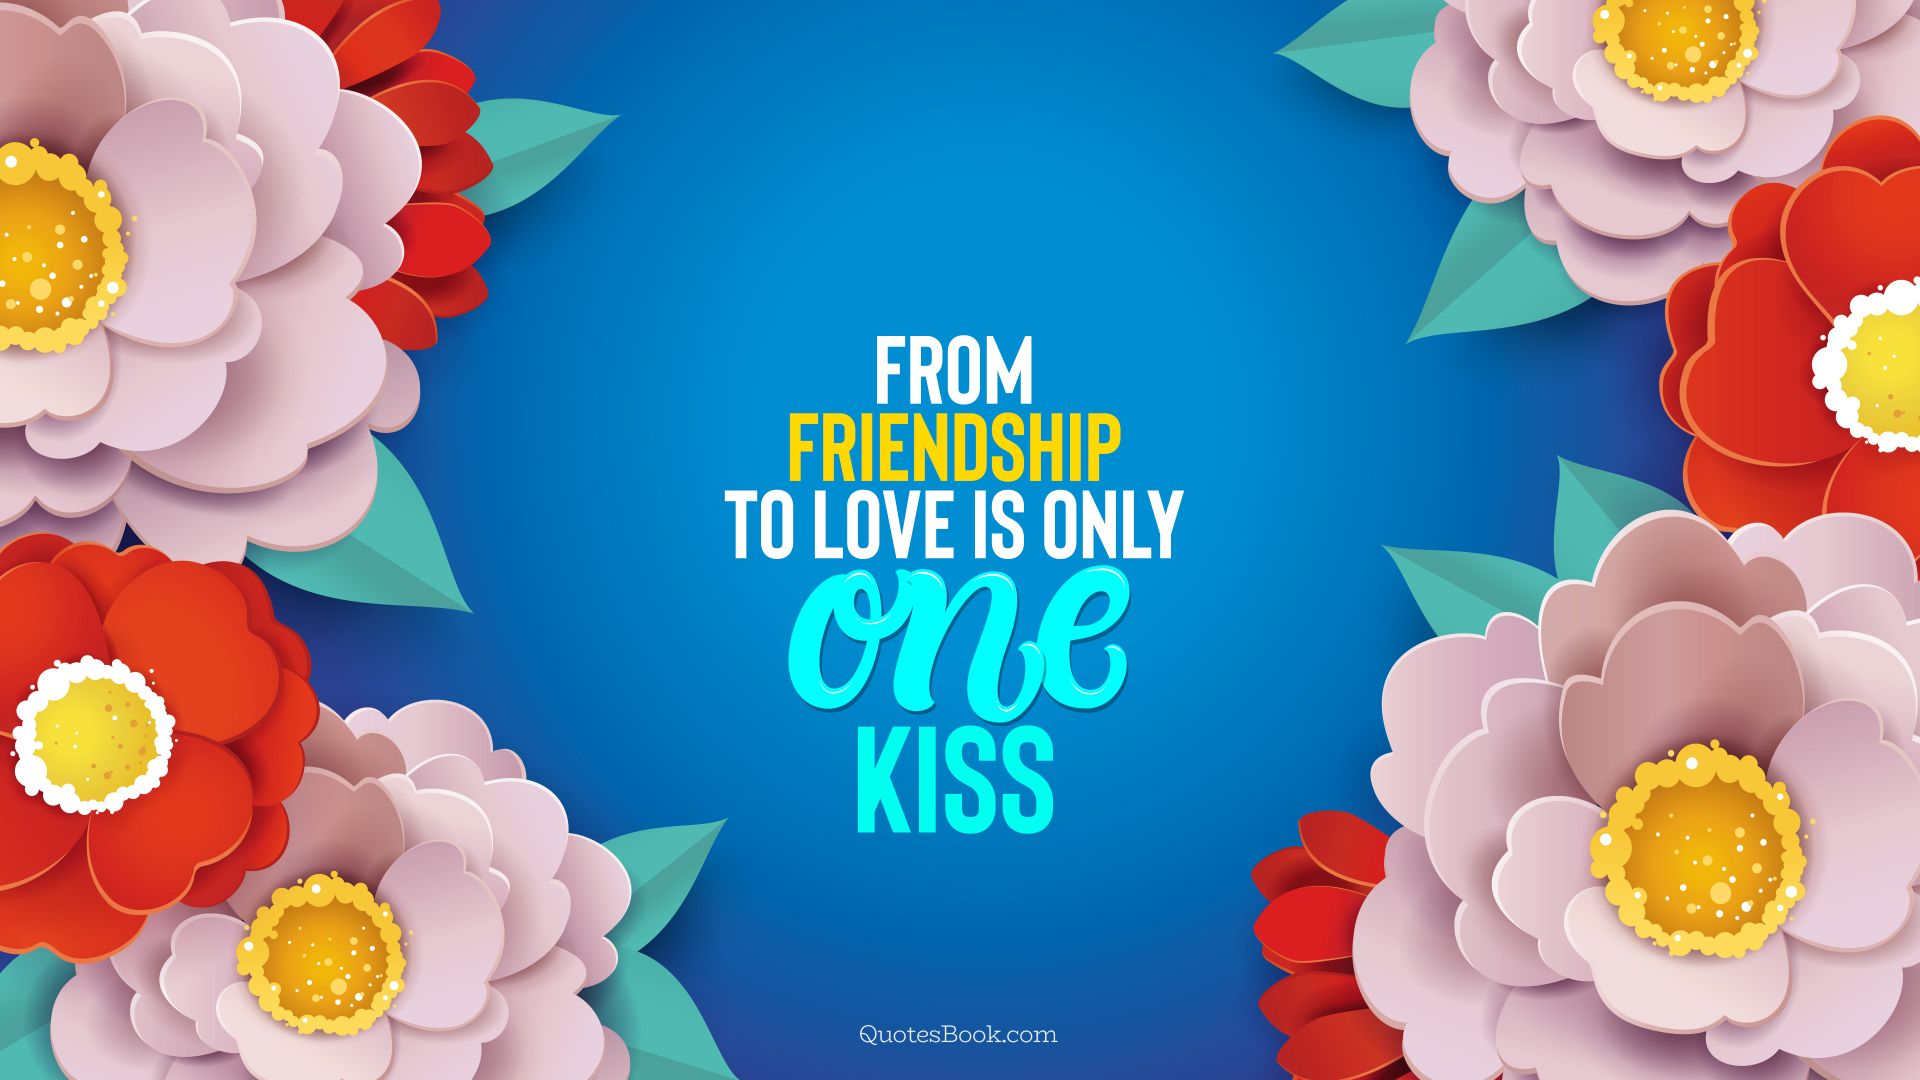 From friendship to love is only one kiss